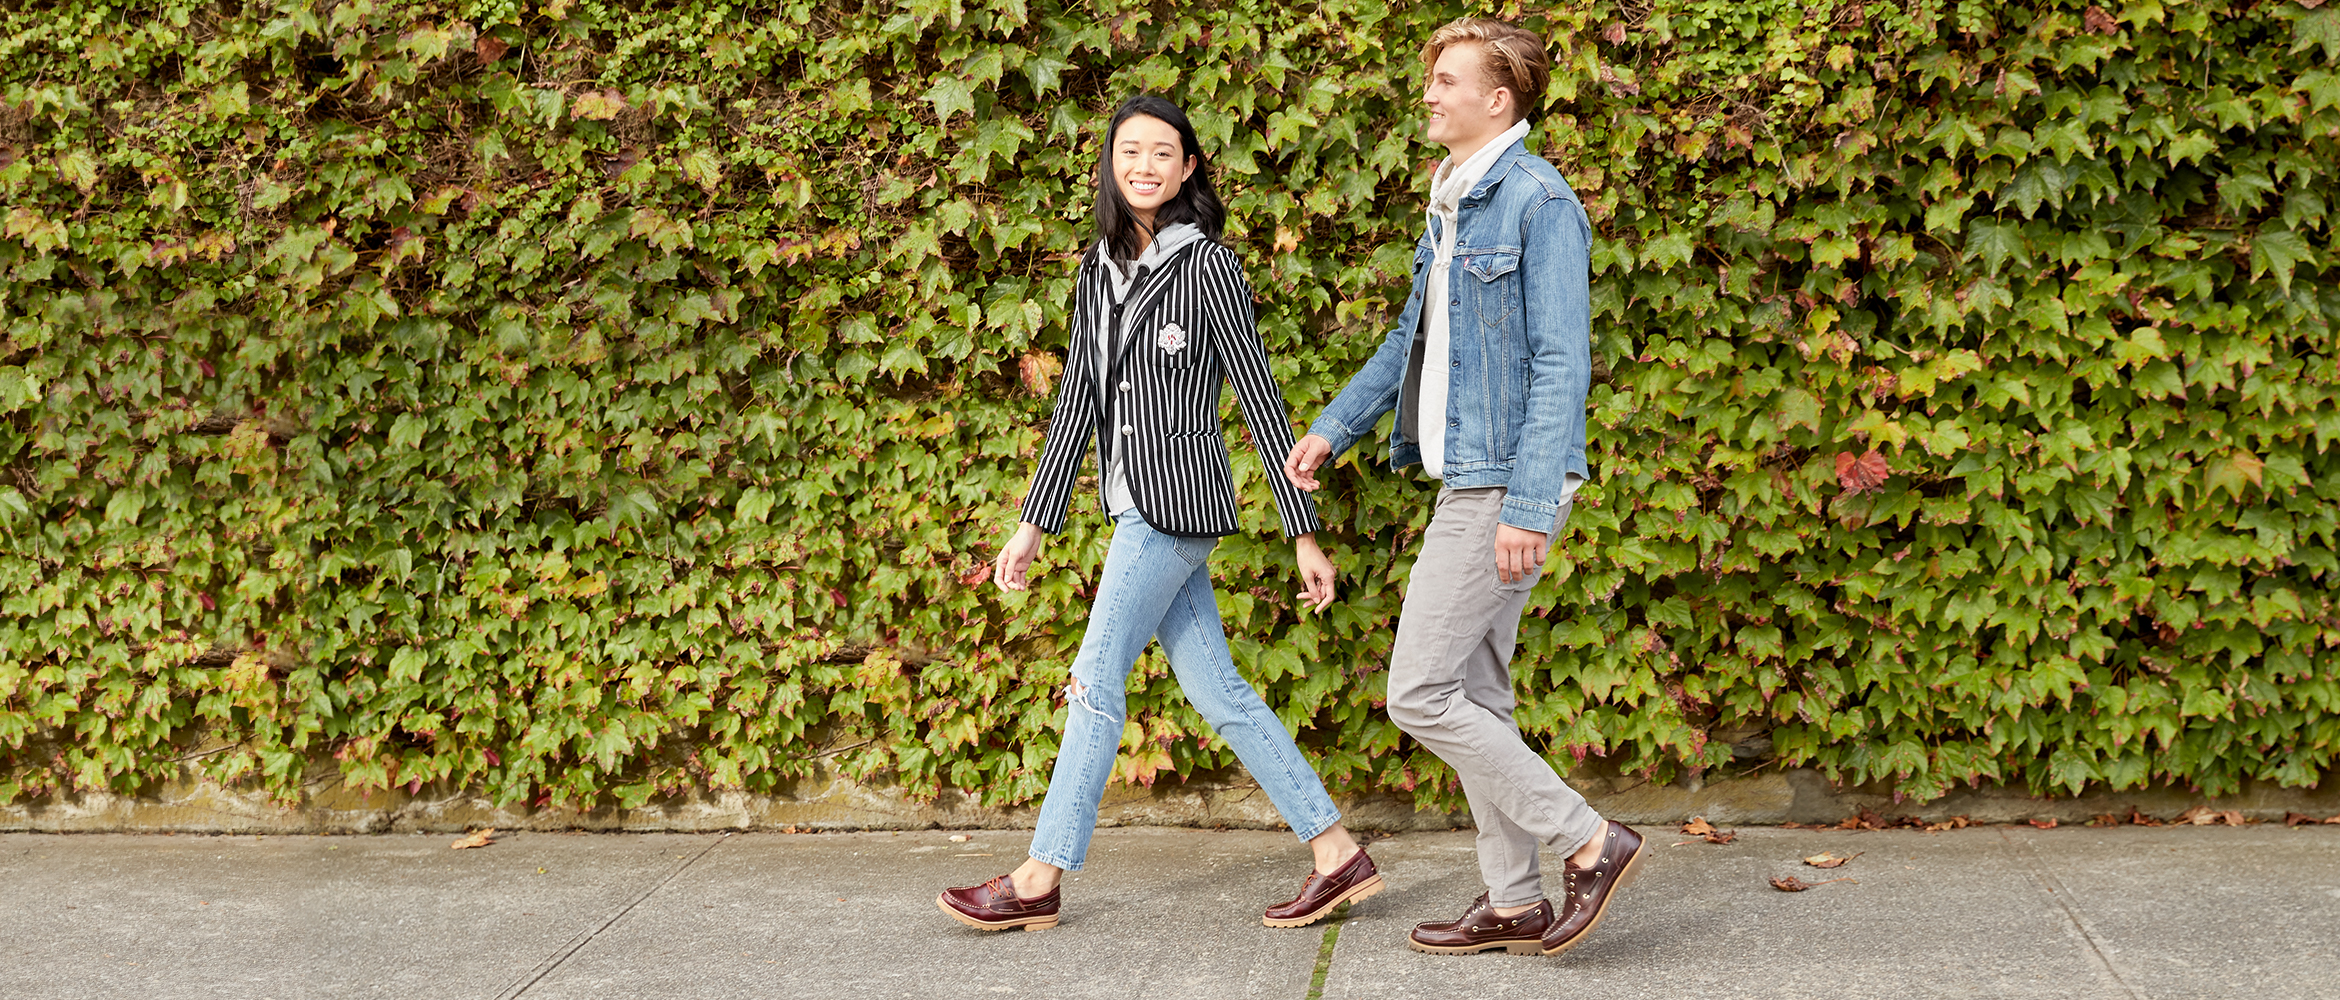 A man and woman walking in new lug boots with greenery in the background.